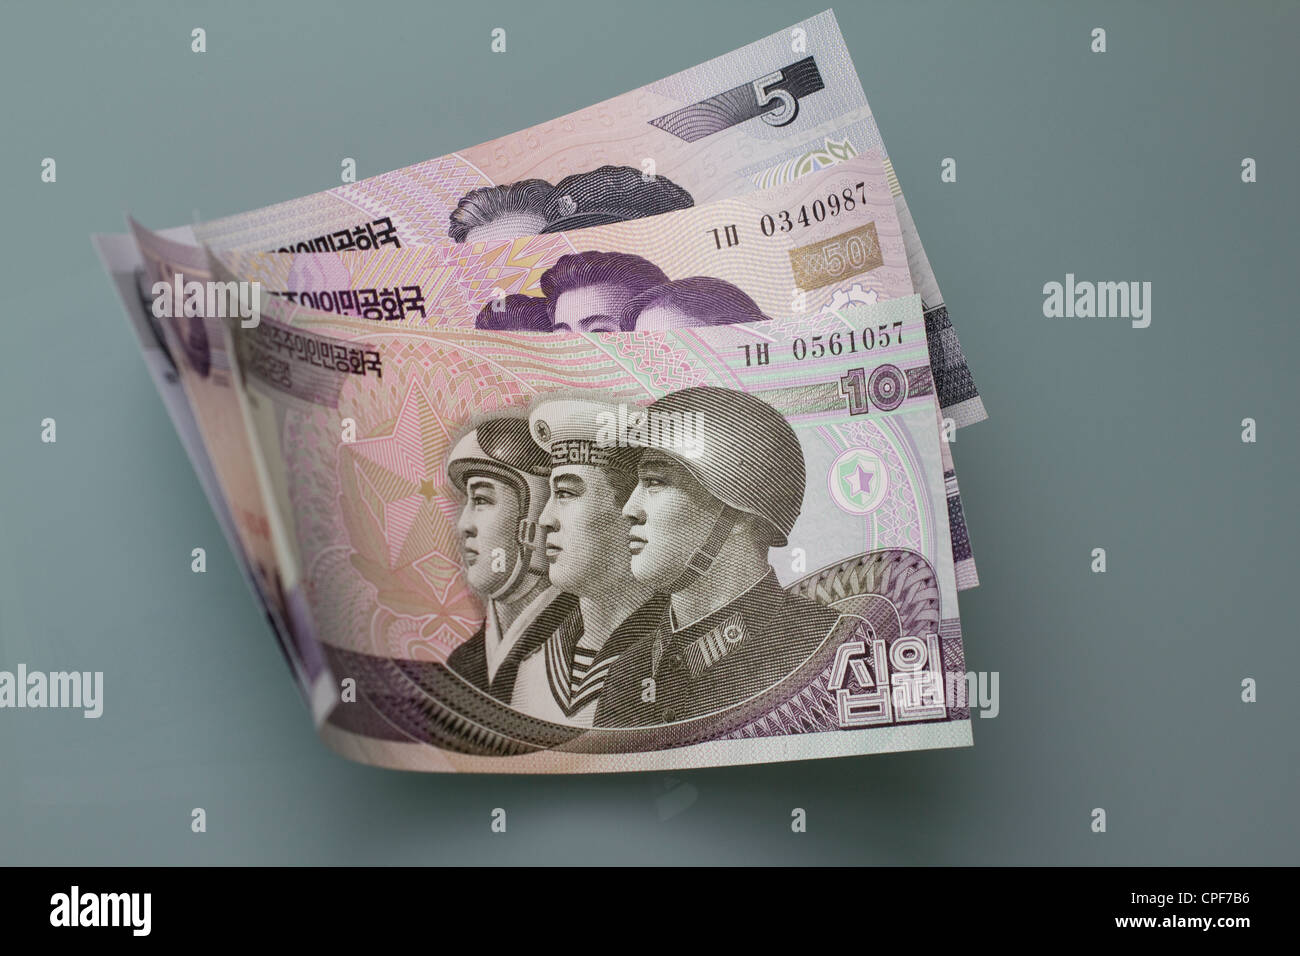 Korean money stock photos korean money stock images alamy bank notes currency money cash korean won currency of north korea democratic peoples republic of buycottarizona